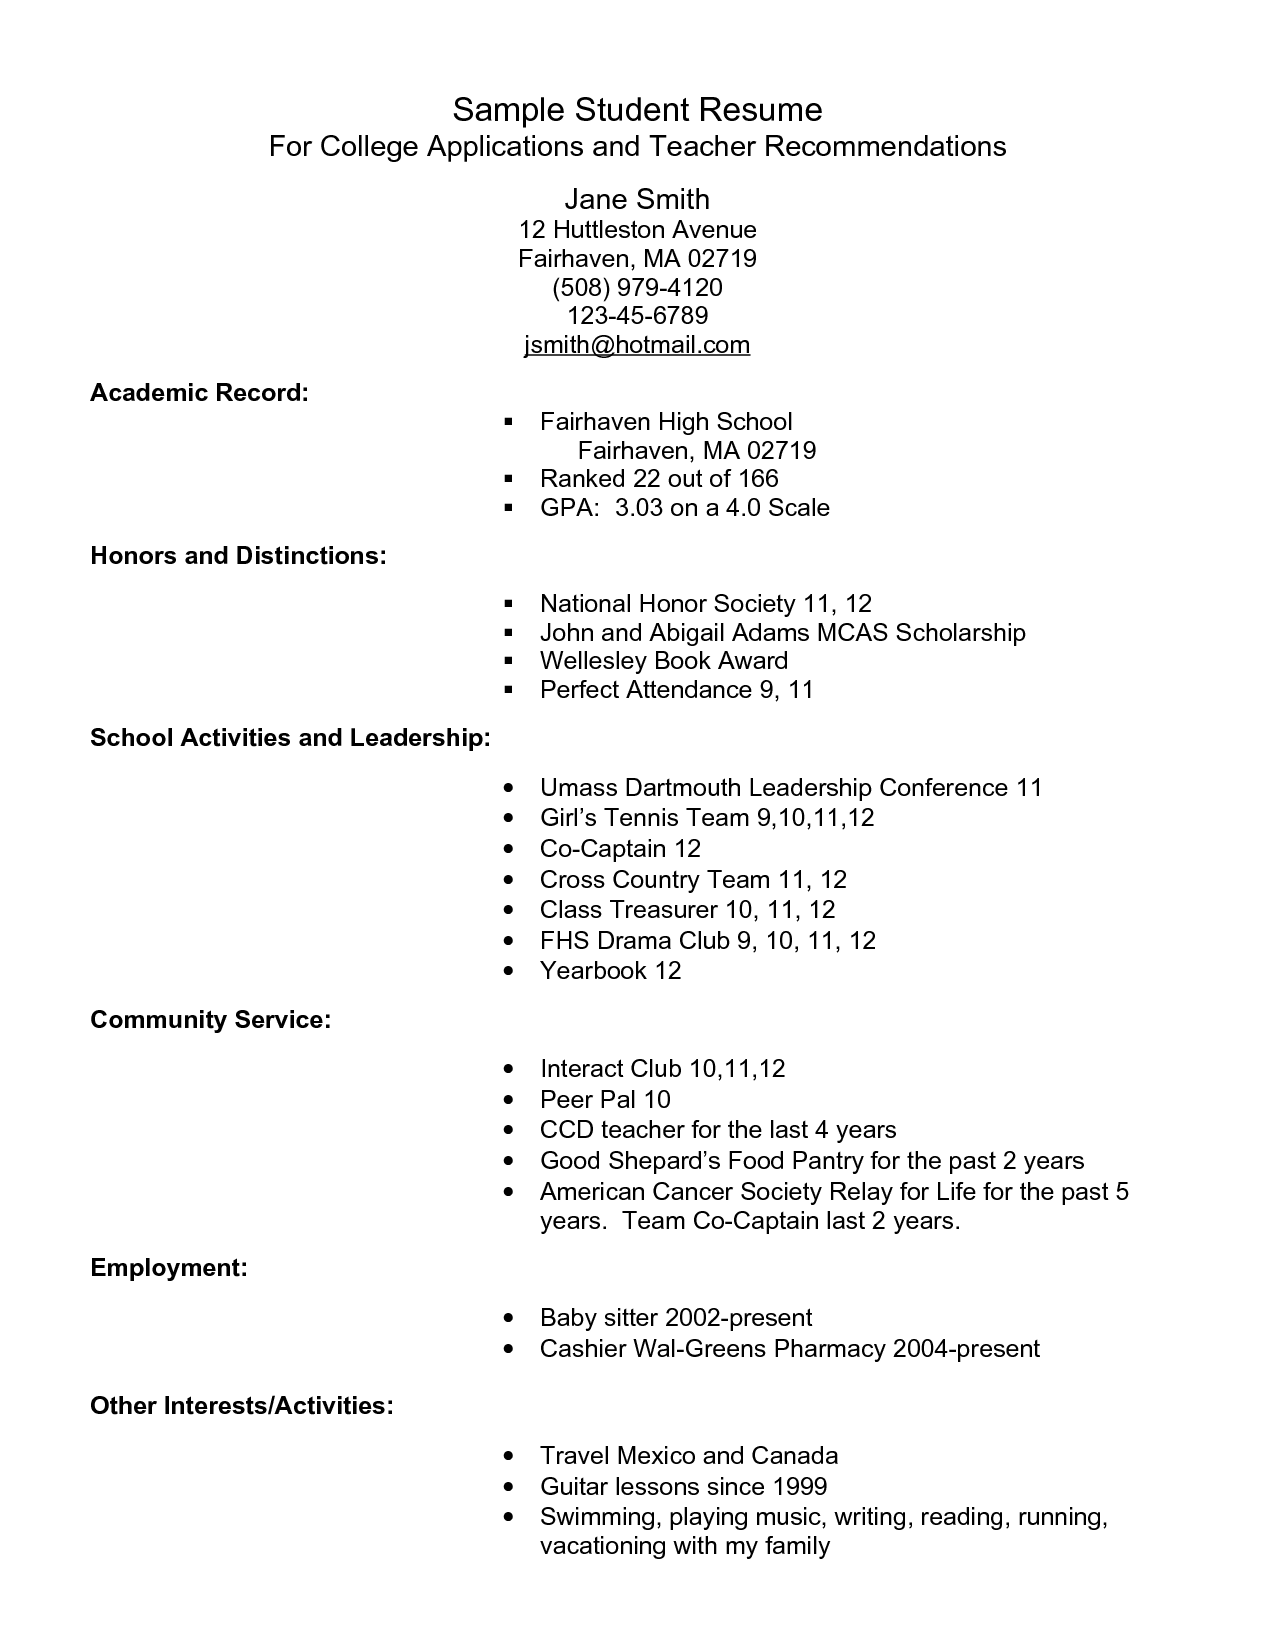 Superb Example Resume For High School Students For College Applications Sample  Student Resume   PDF By Smapdi59